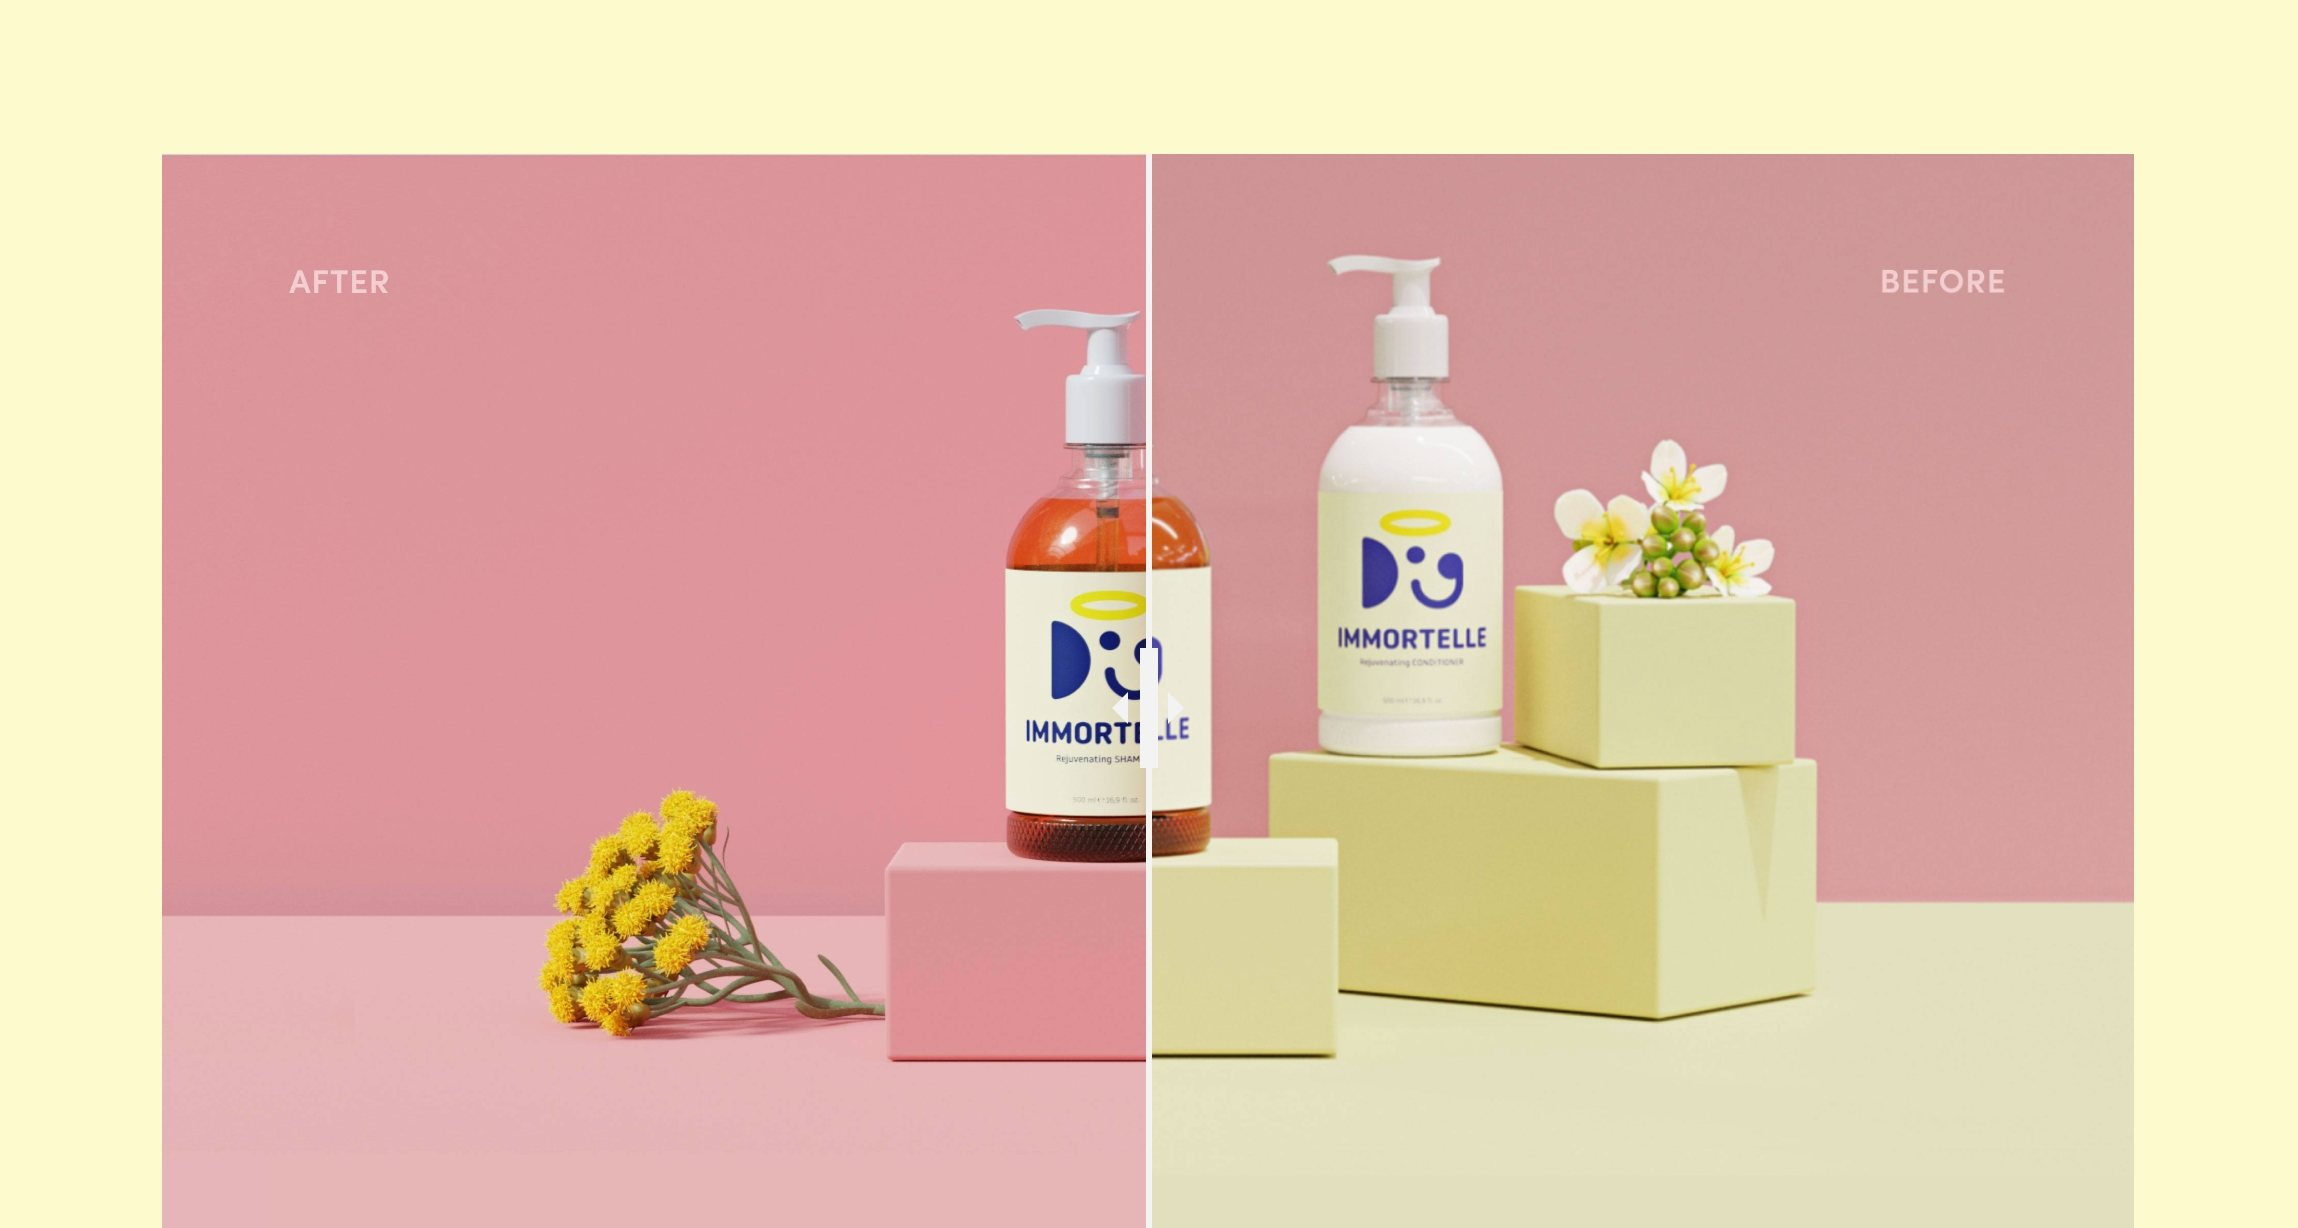 Product render design consultation and art direction for Doglyness